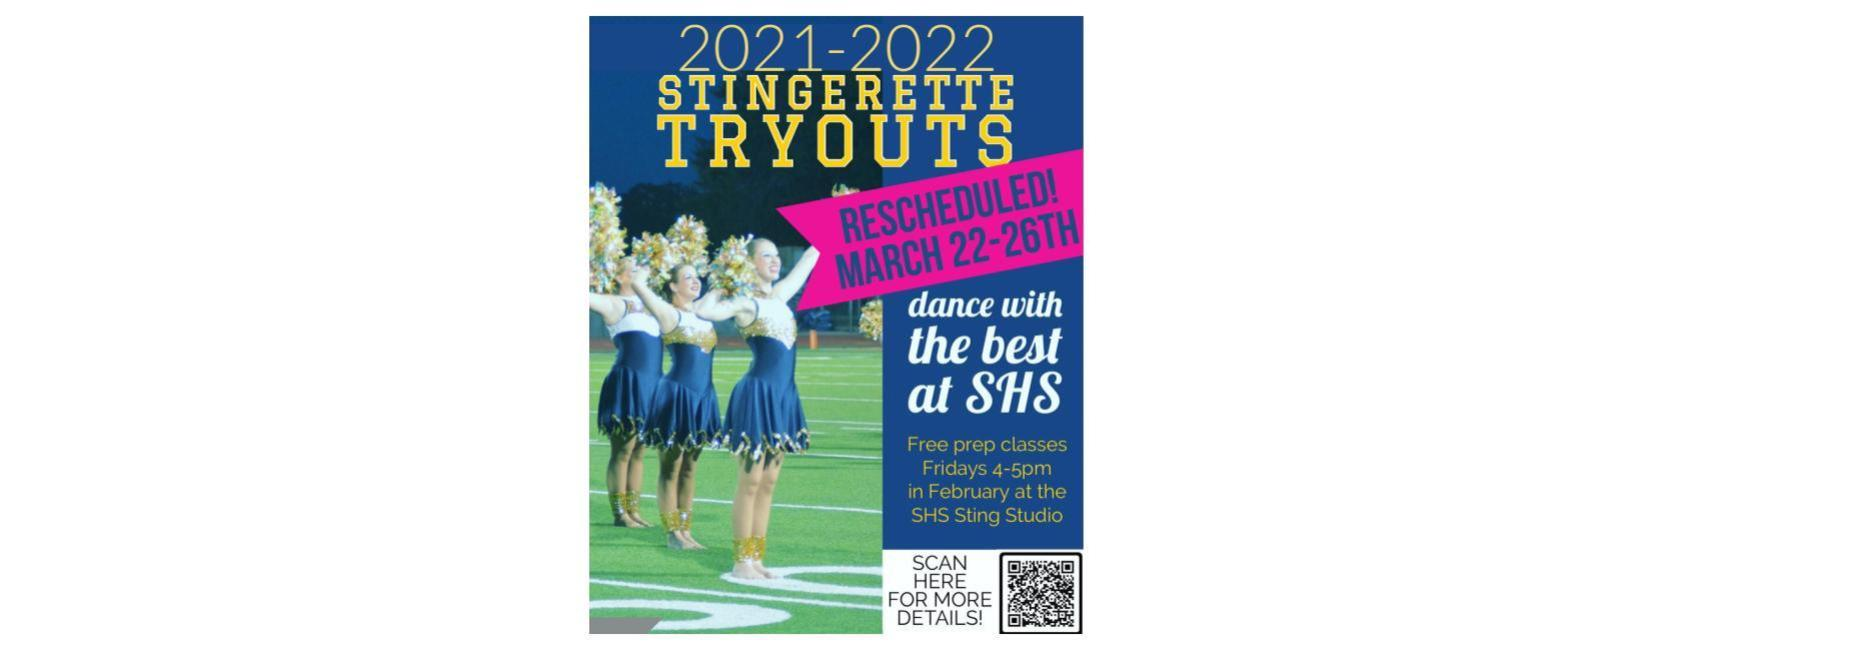 Sting tryout info